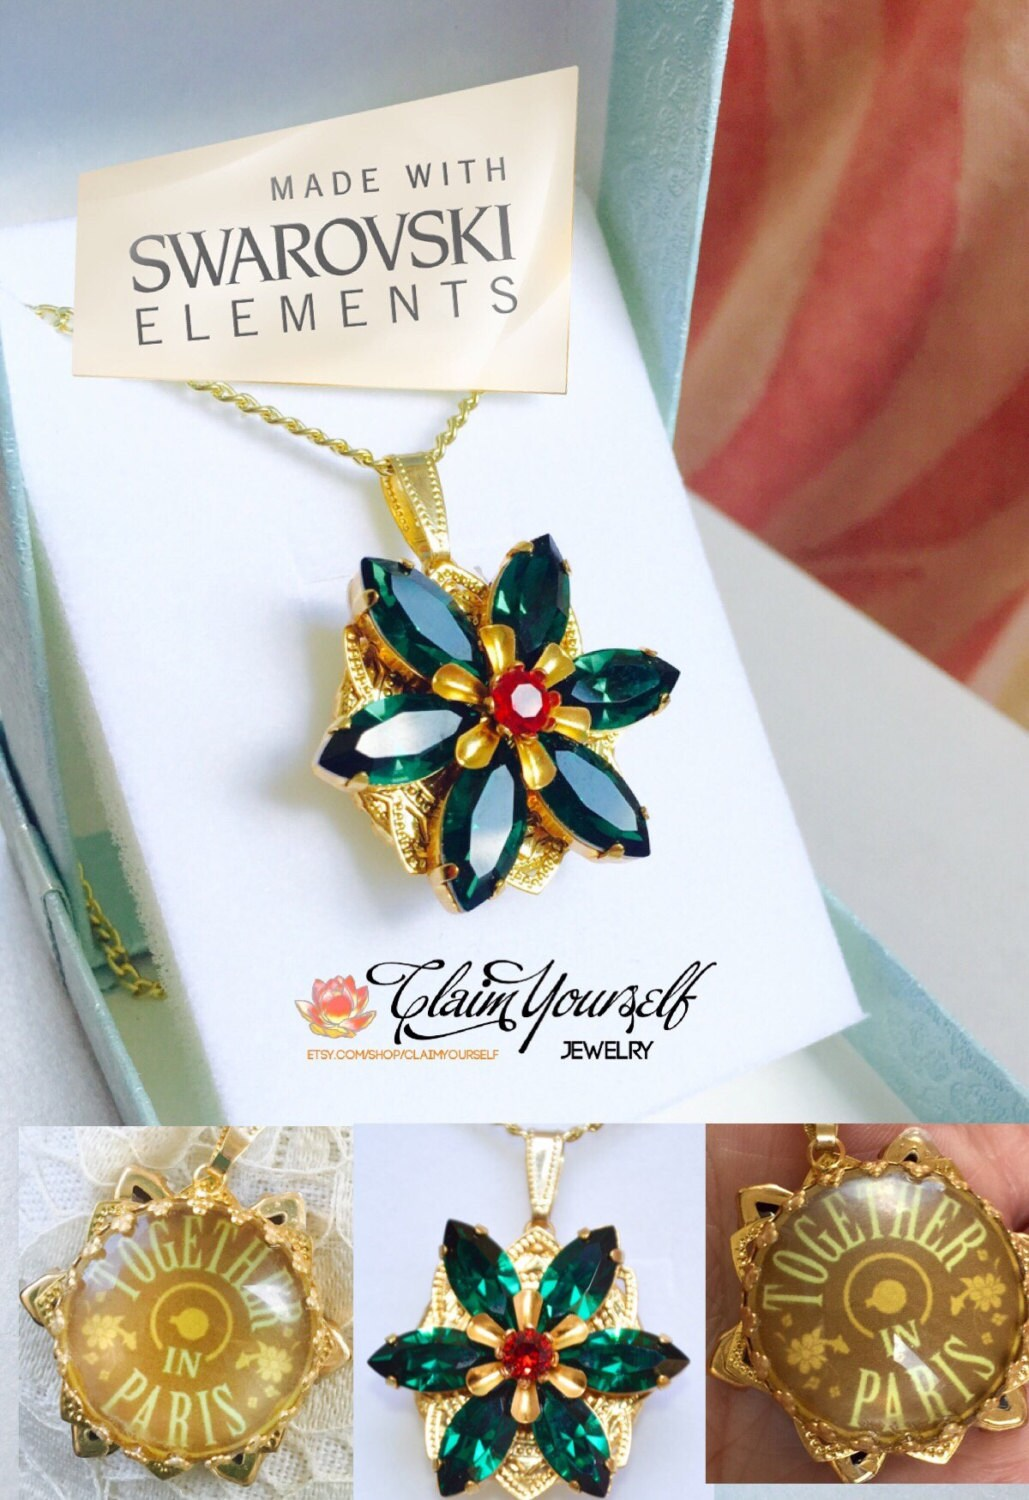 Anastasia Together in Paris Necklace with by ClaimYourself